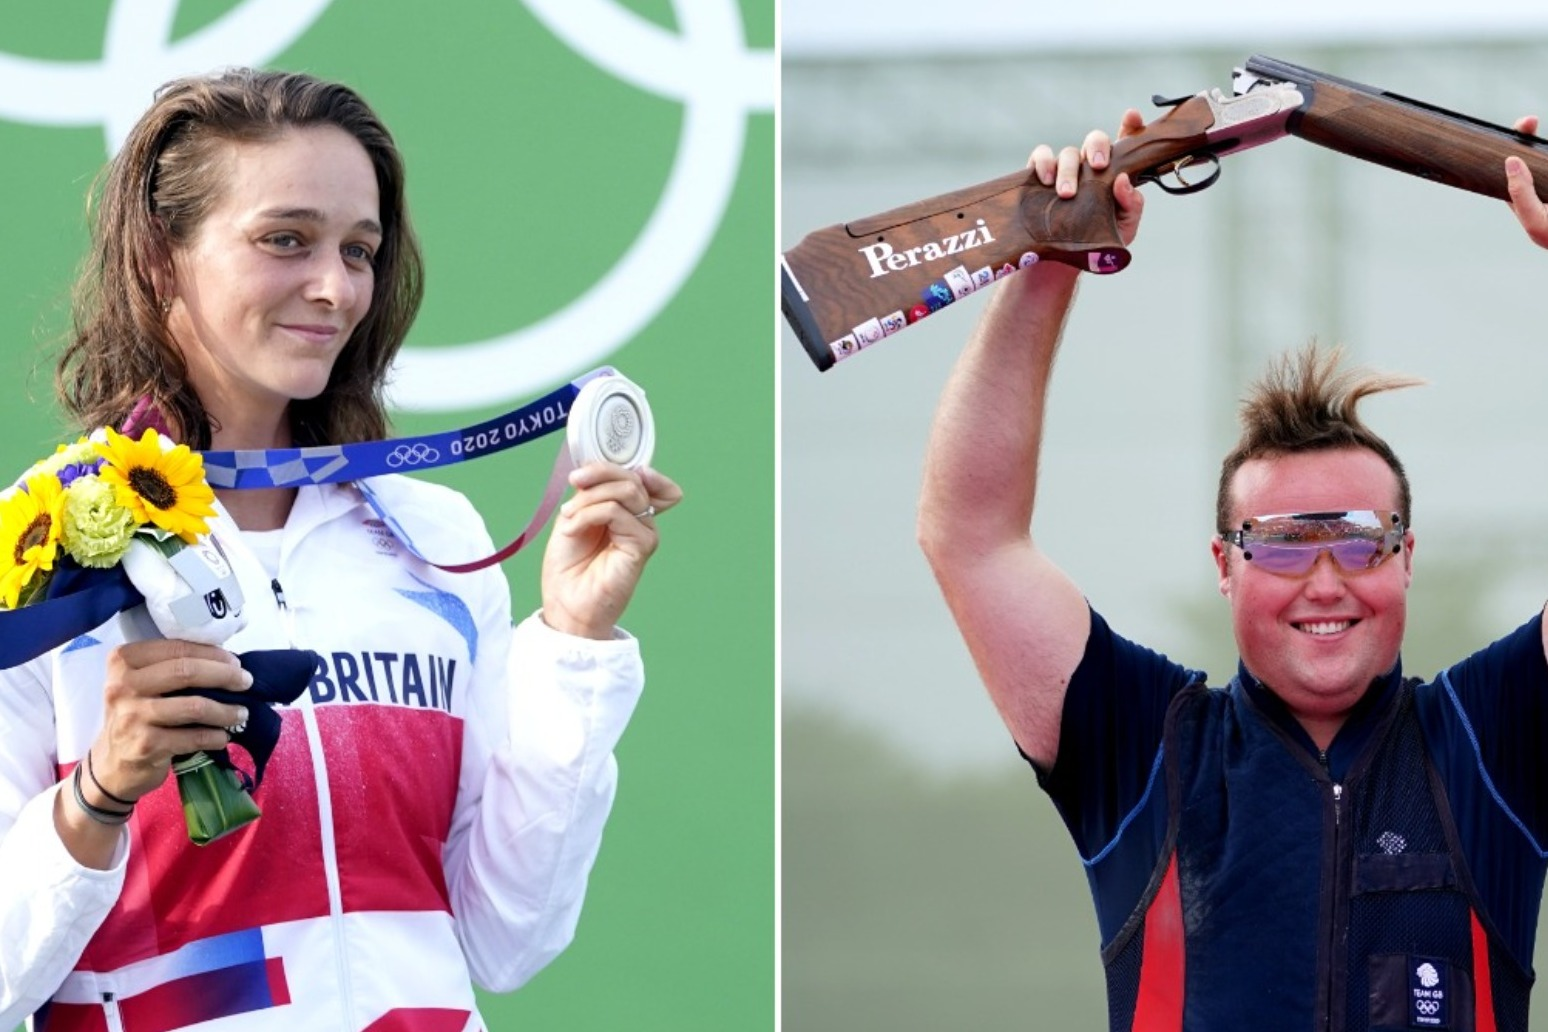 More medal successes for Team GB at the Tokyo Olympics